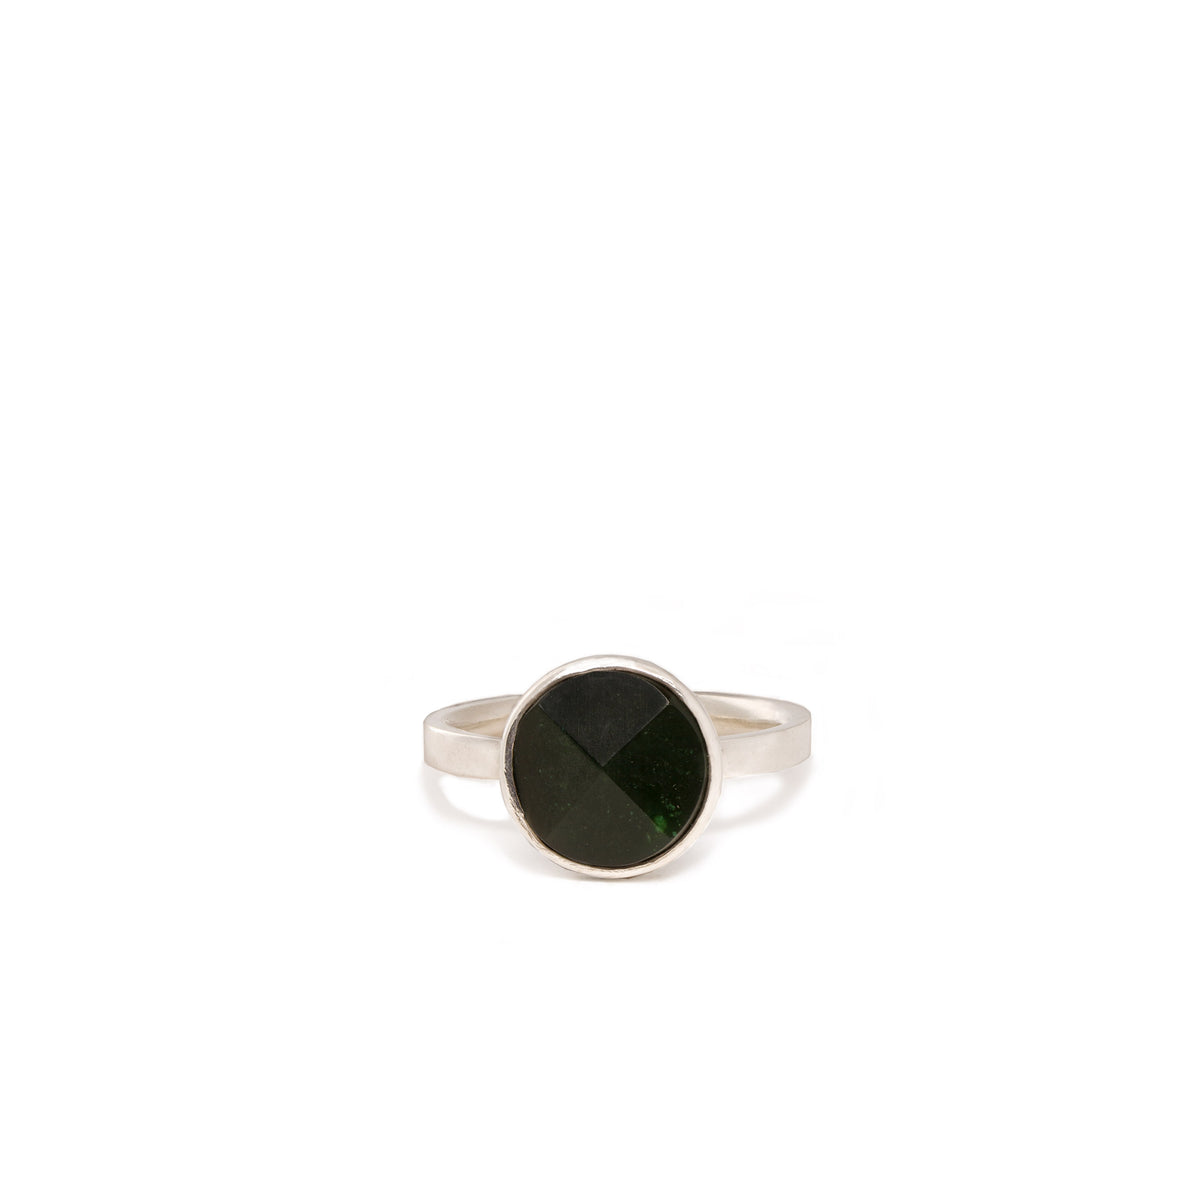 Canadian Jade Small Faceted Disc Ring - Size P